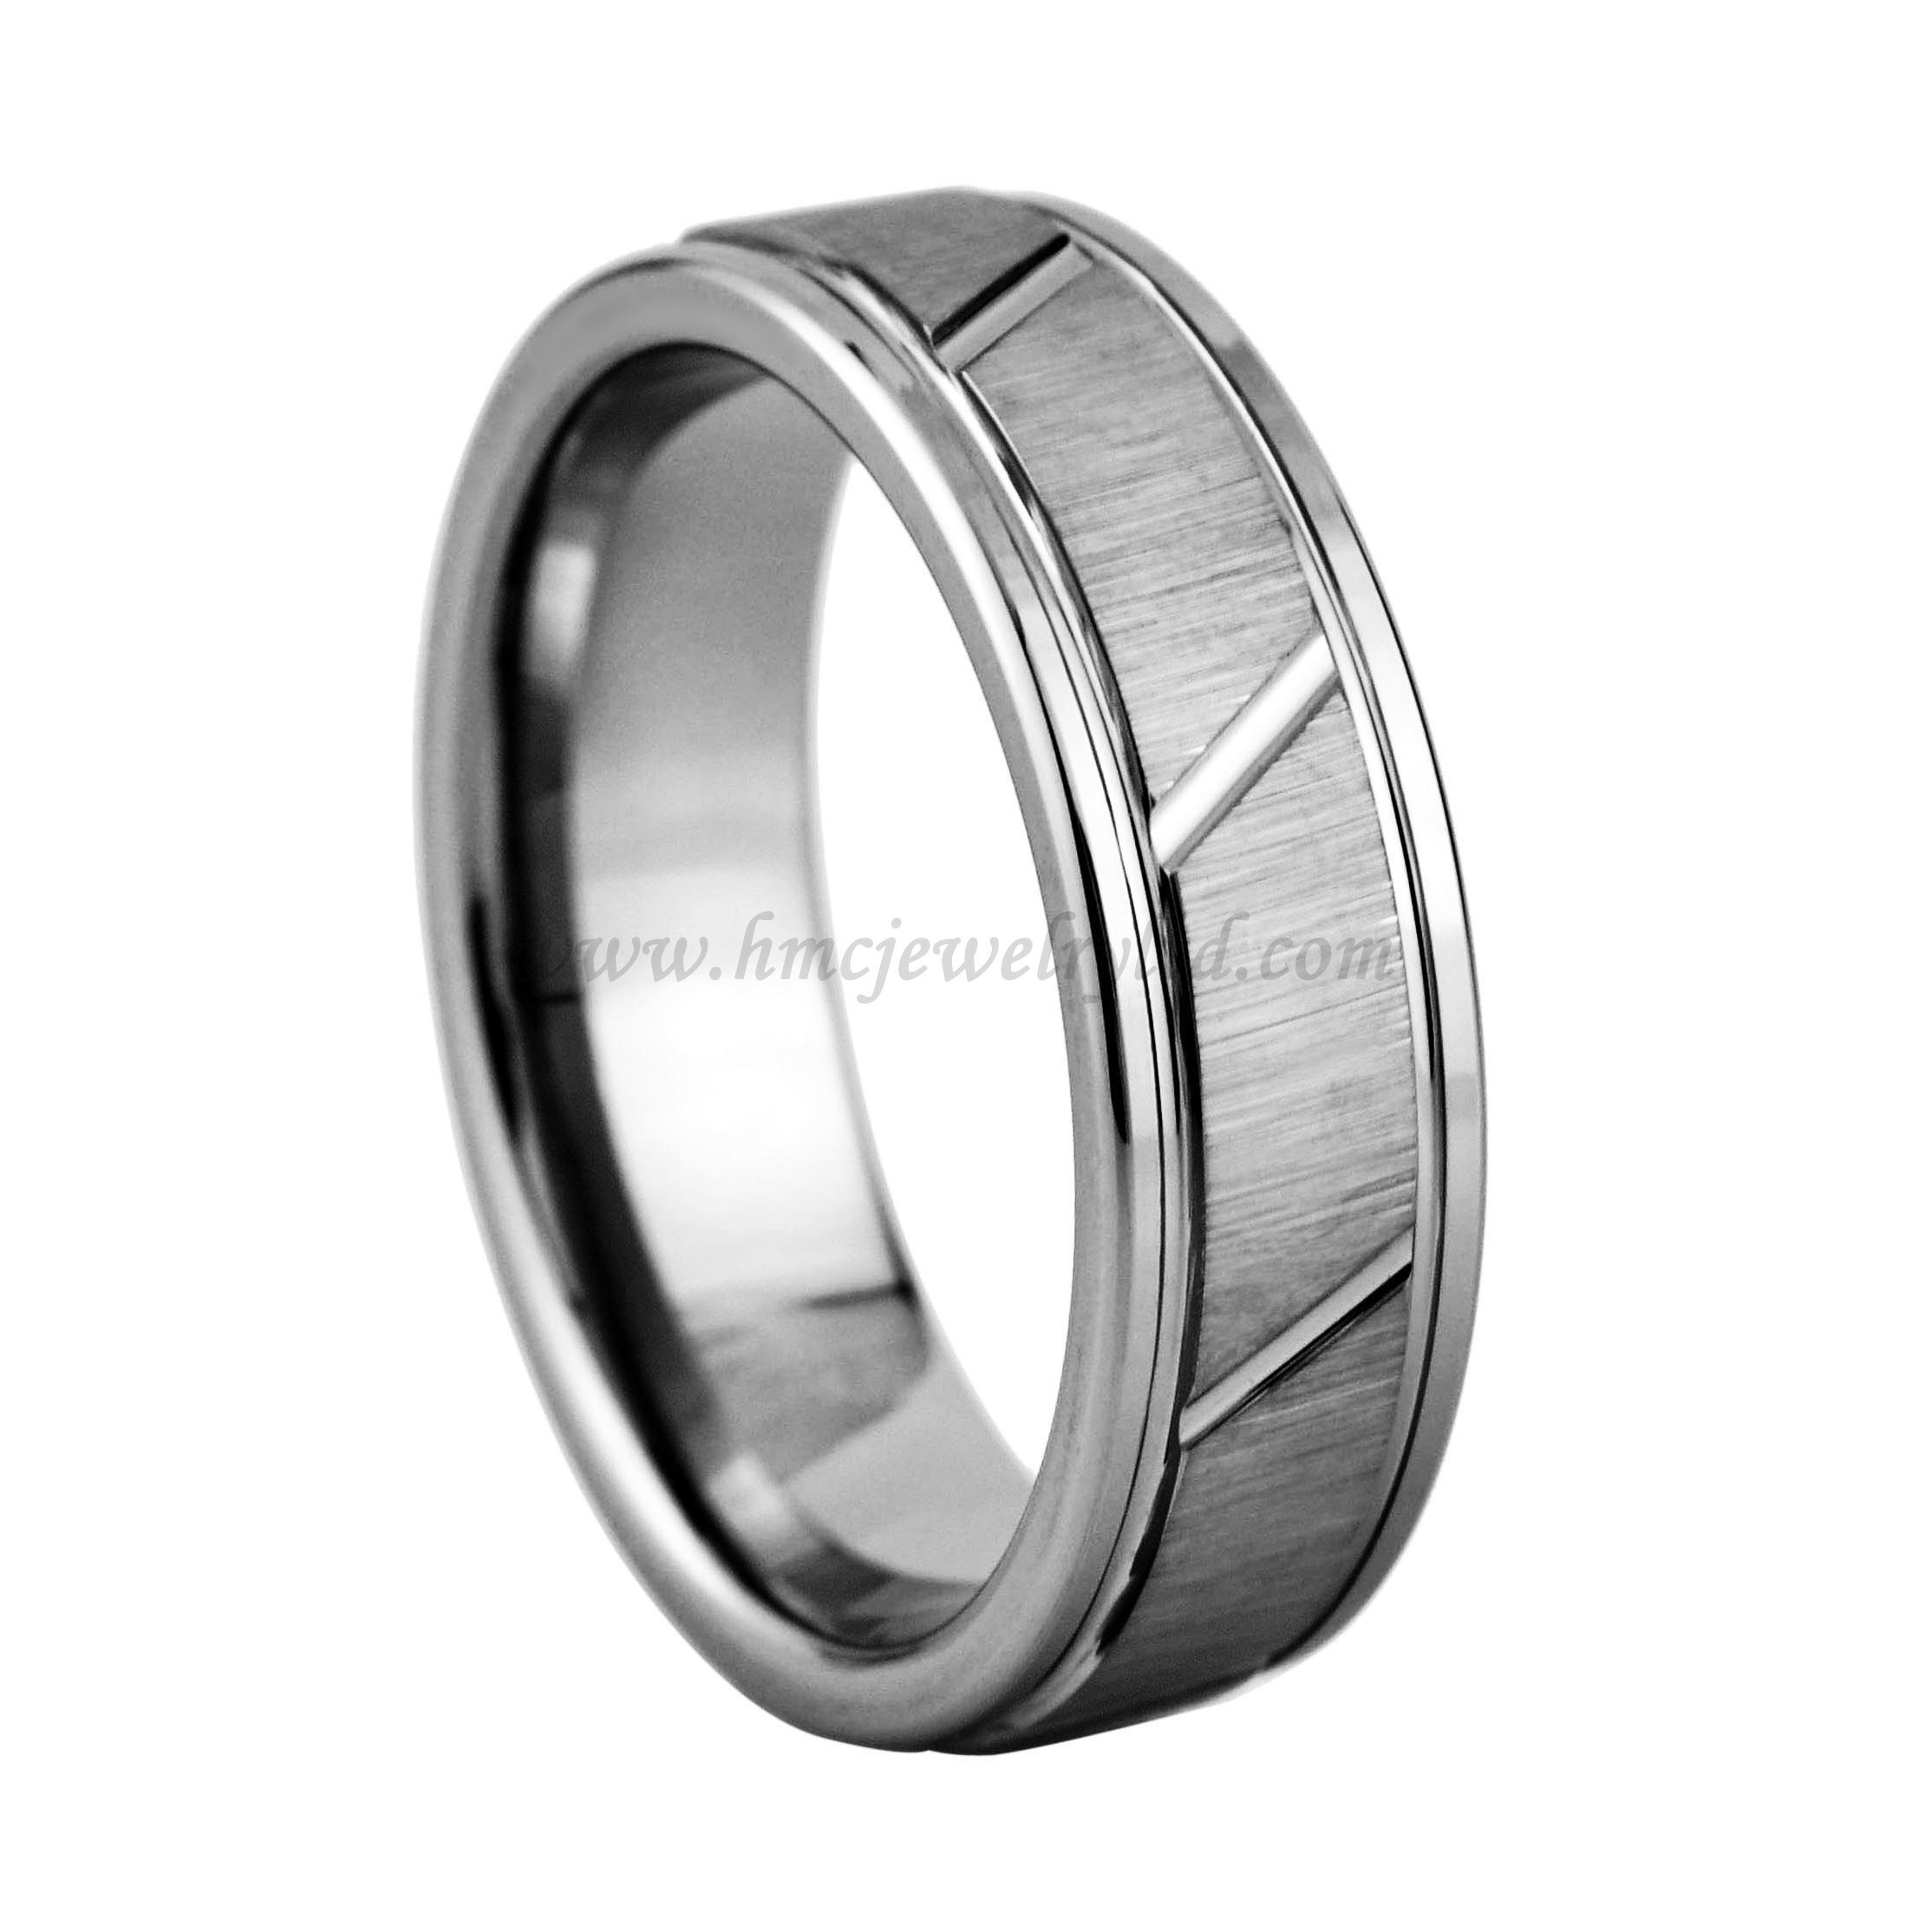 stunning band all and rings bands scratch carbide engagement pros for best sale tungsten mens metal images resistant wedding coba diamond cons